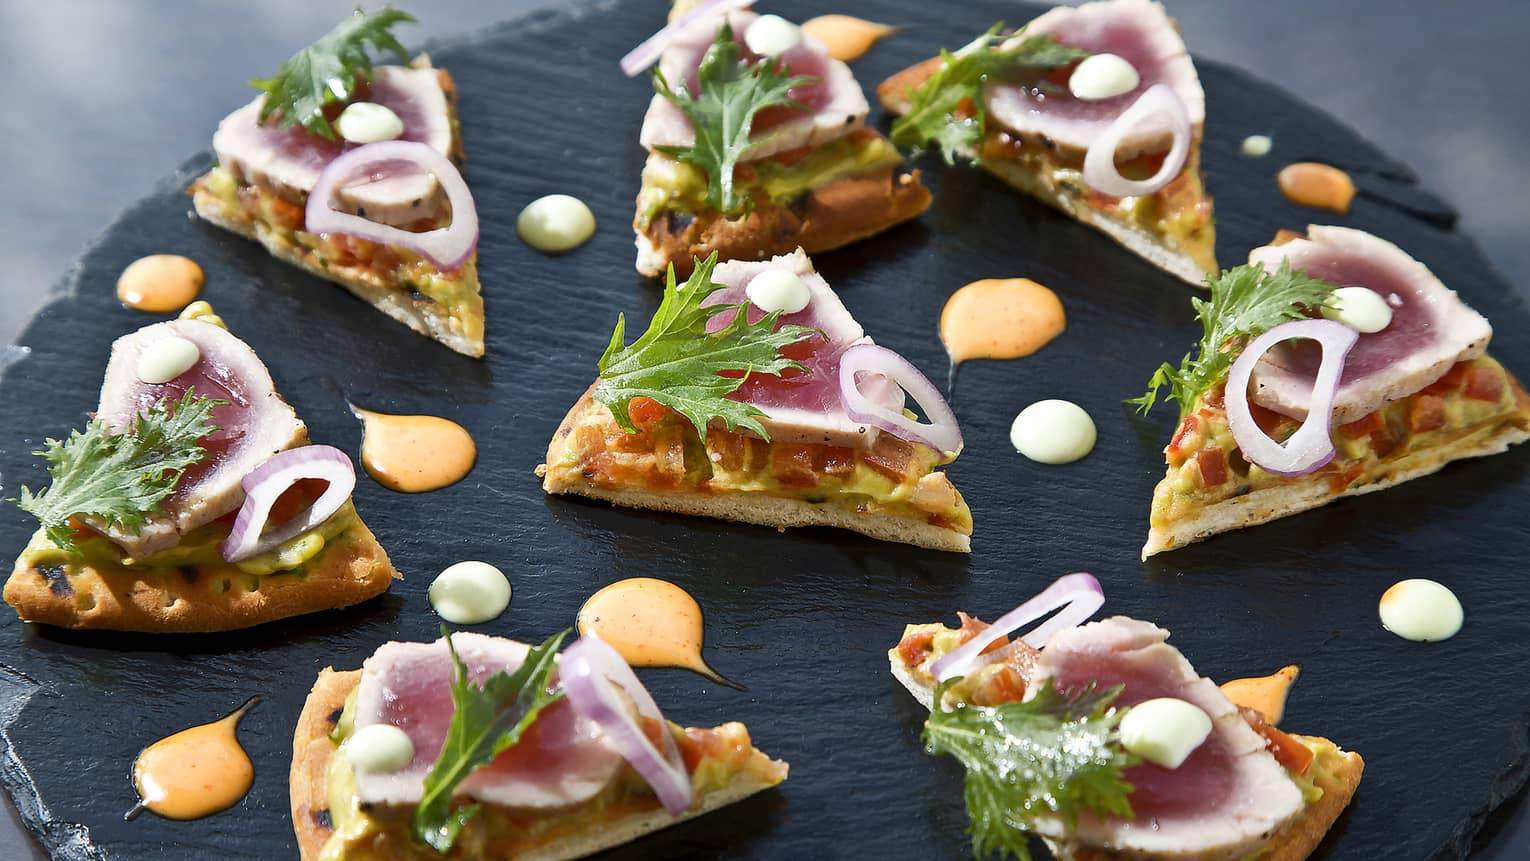 Small gourmet flatbread slices topped with red onion, greens on slate platter